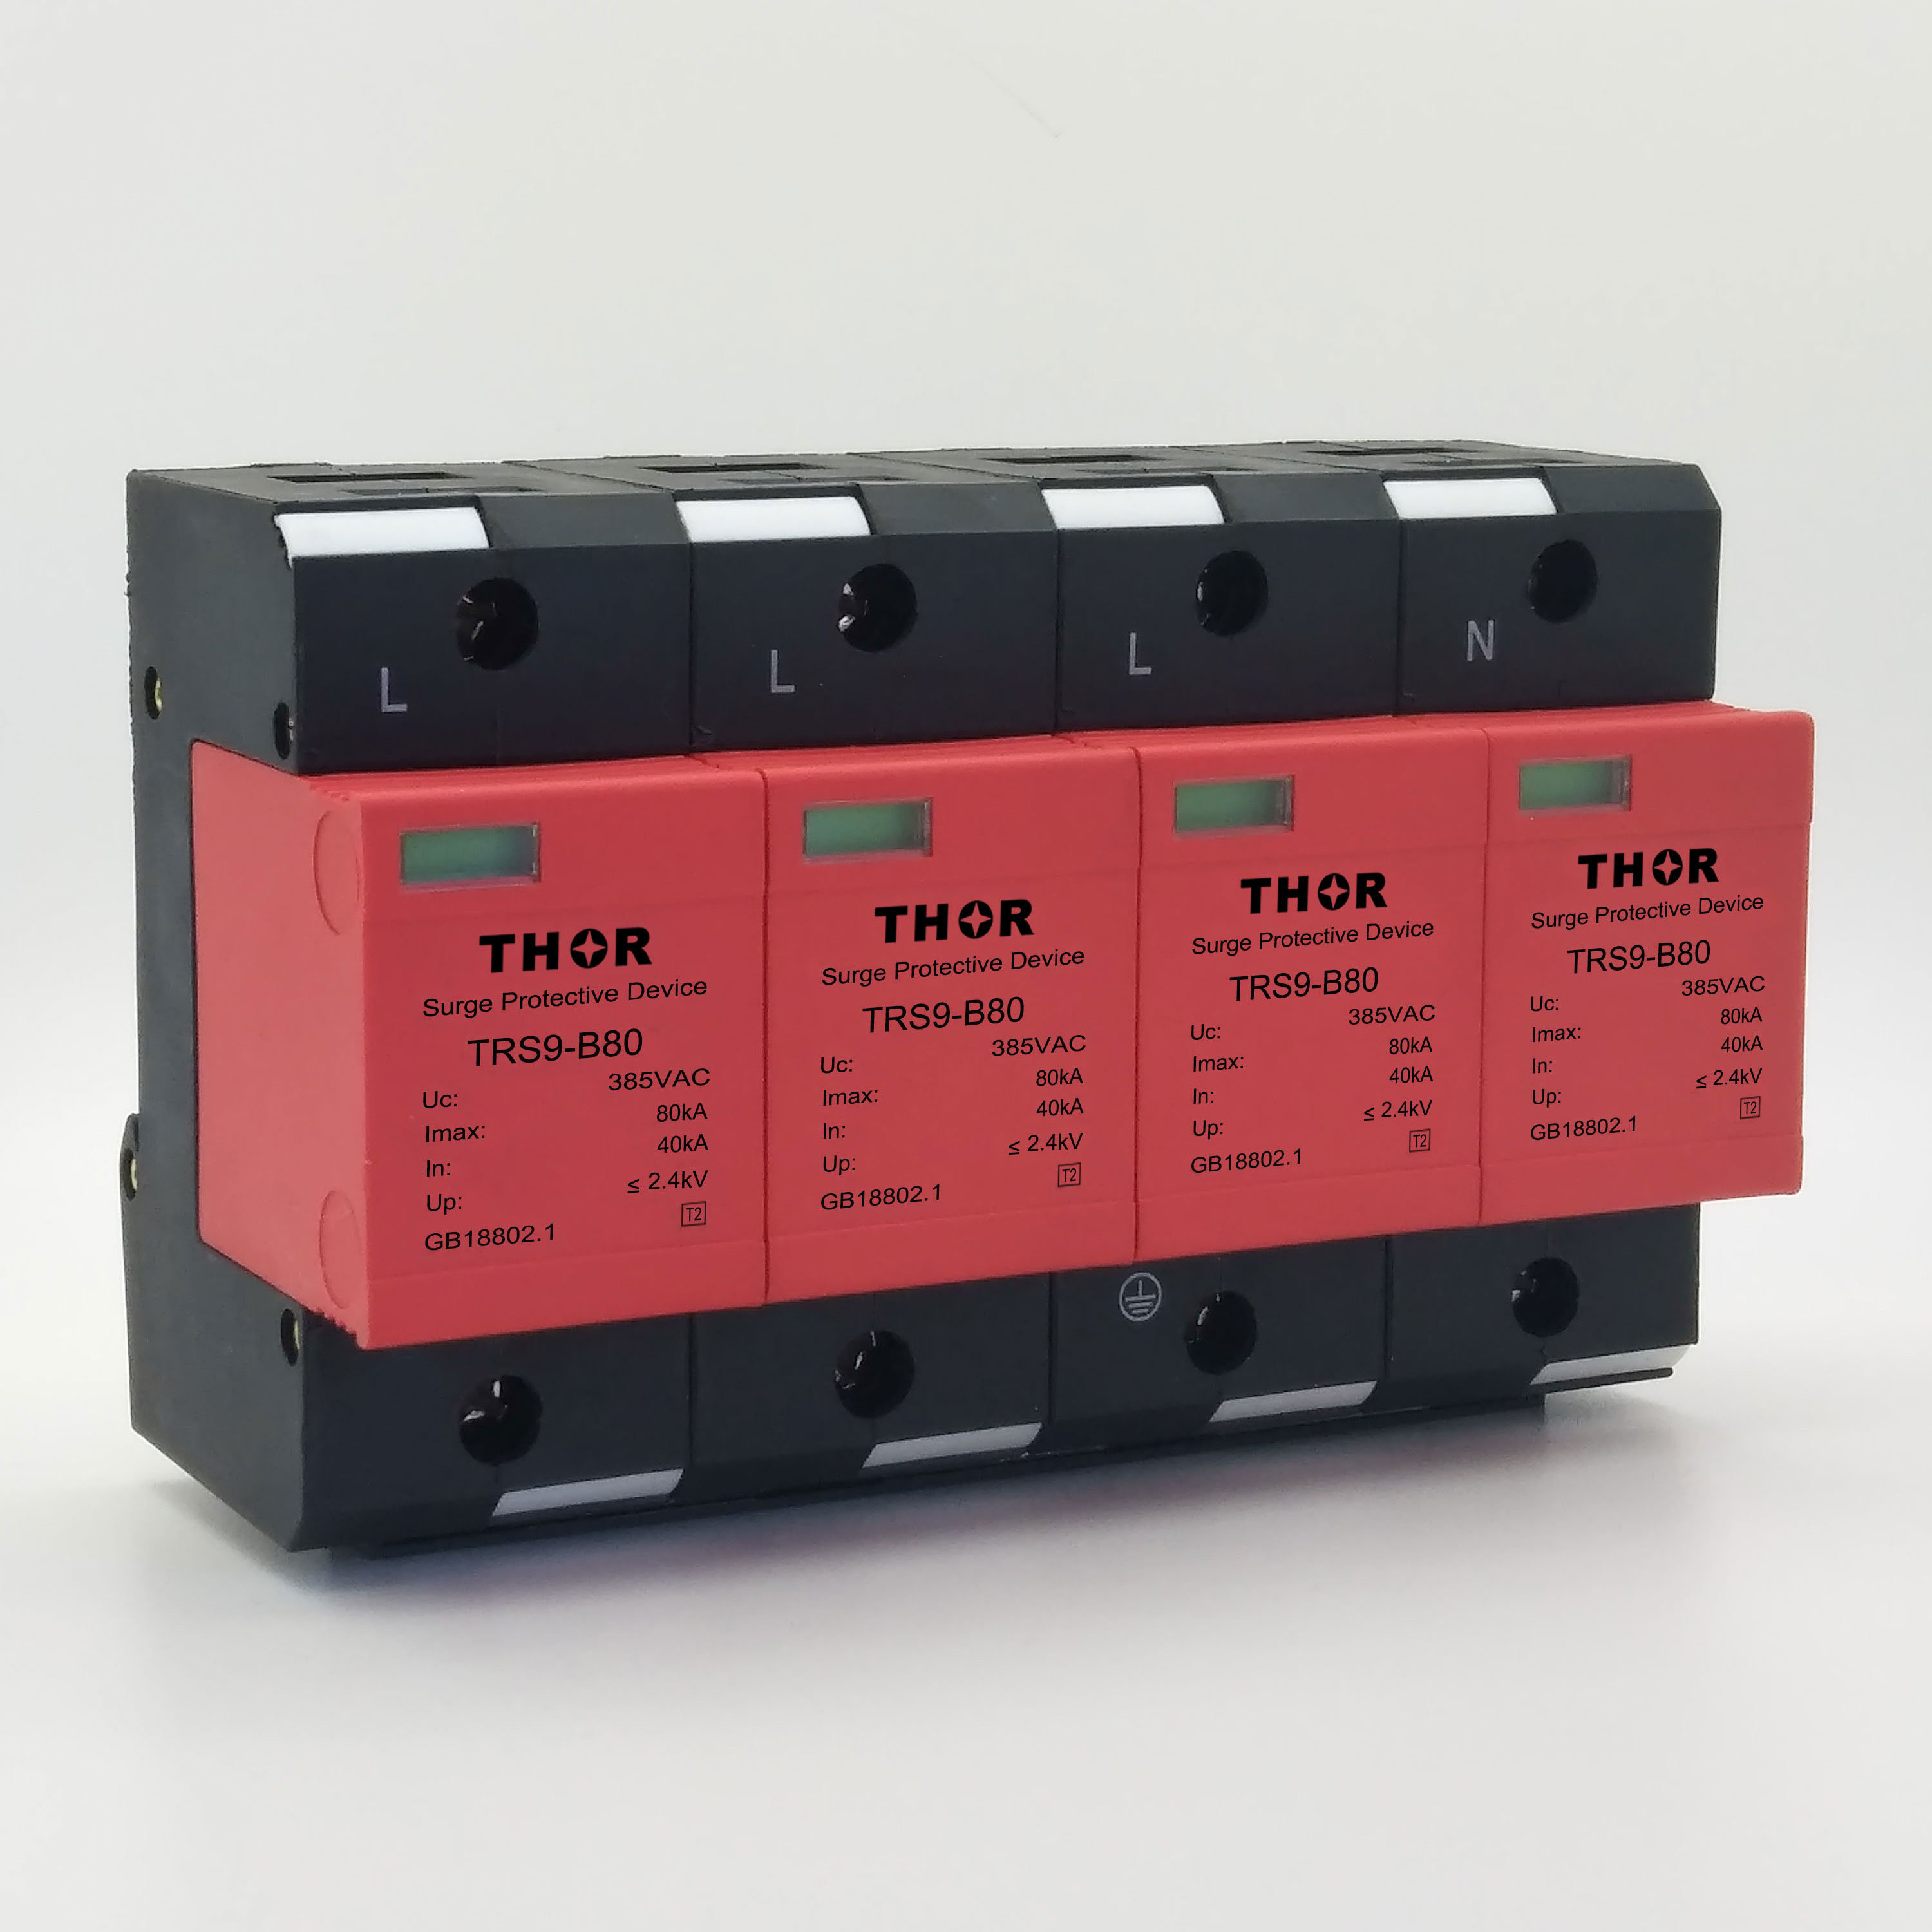 Lightning Arrester Surge Protector for Equipment Protection